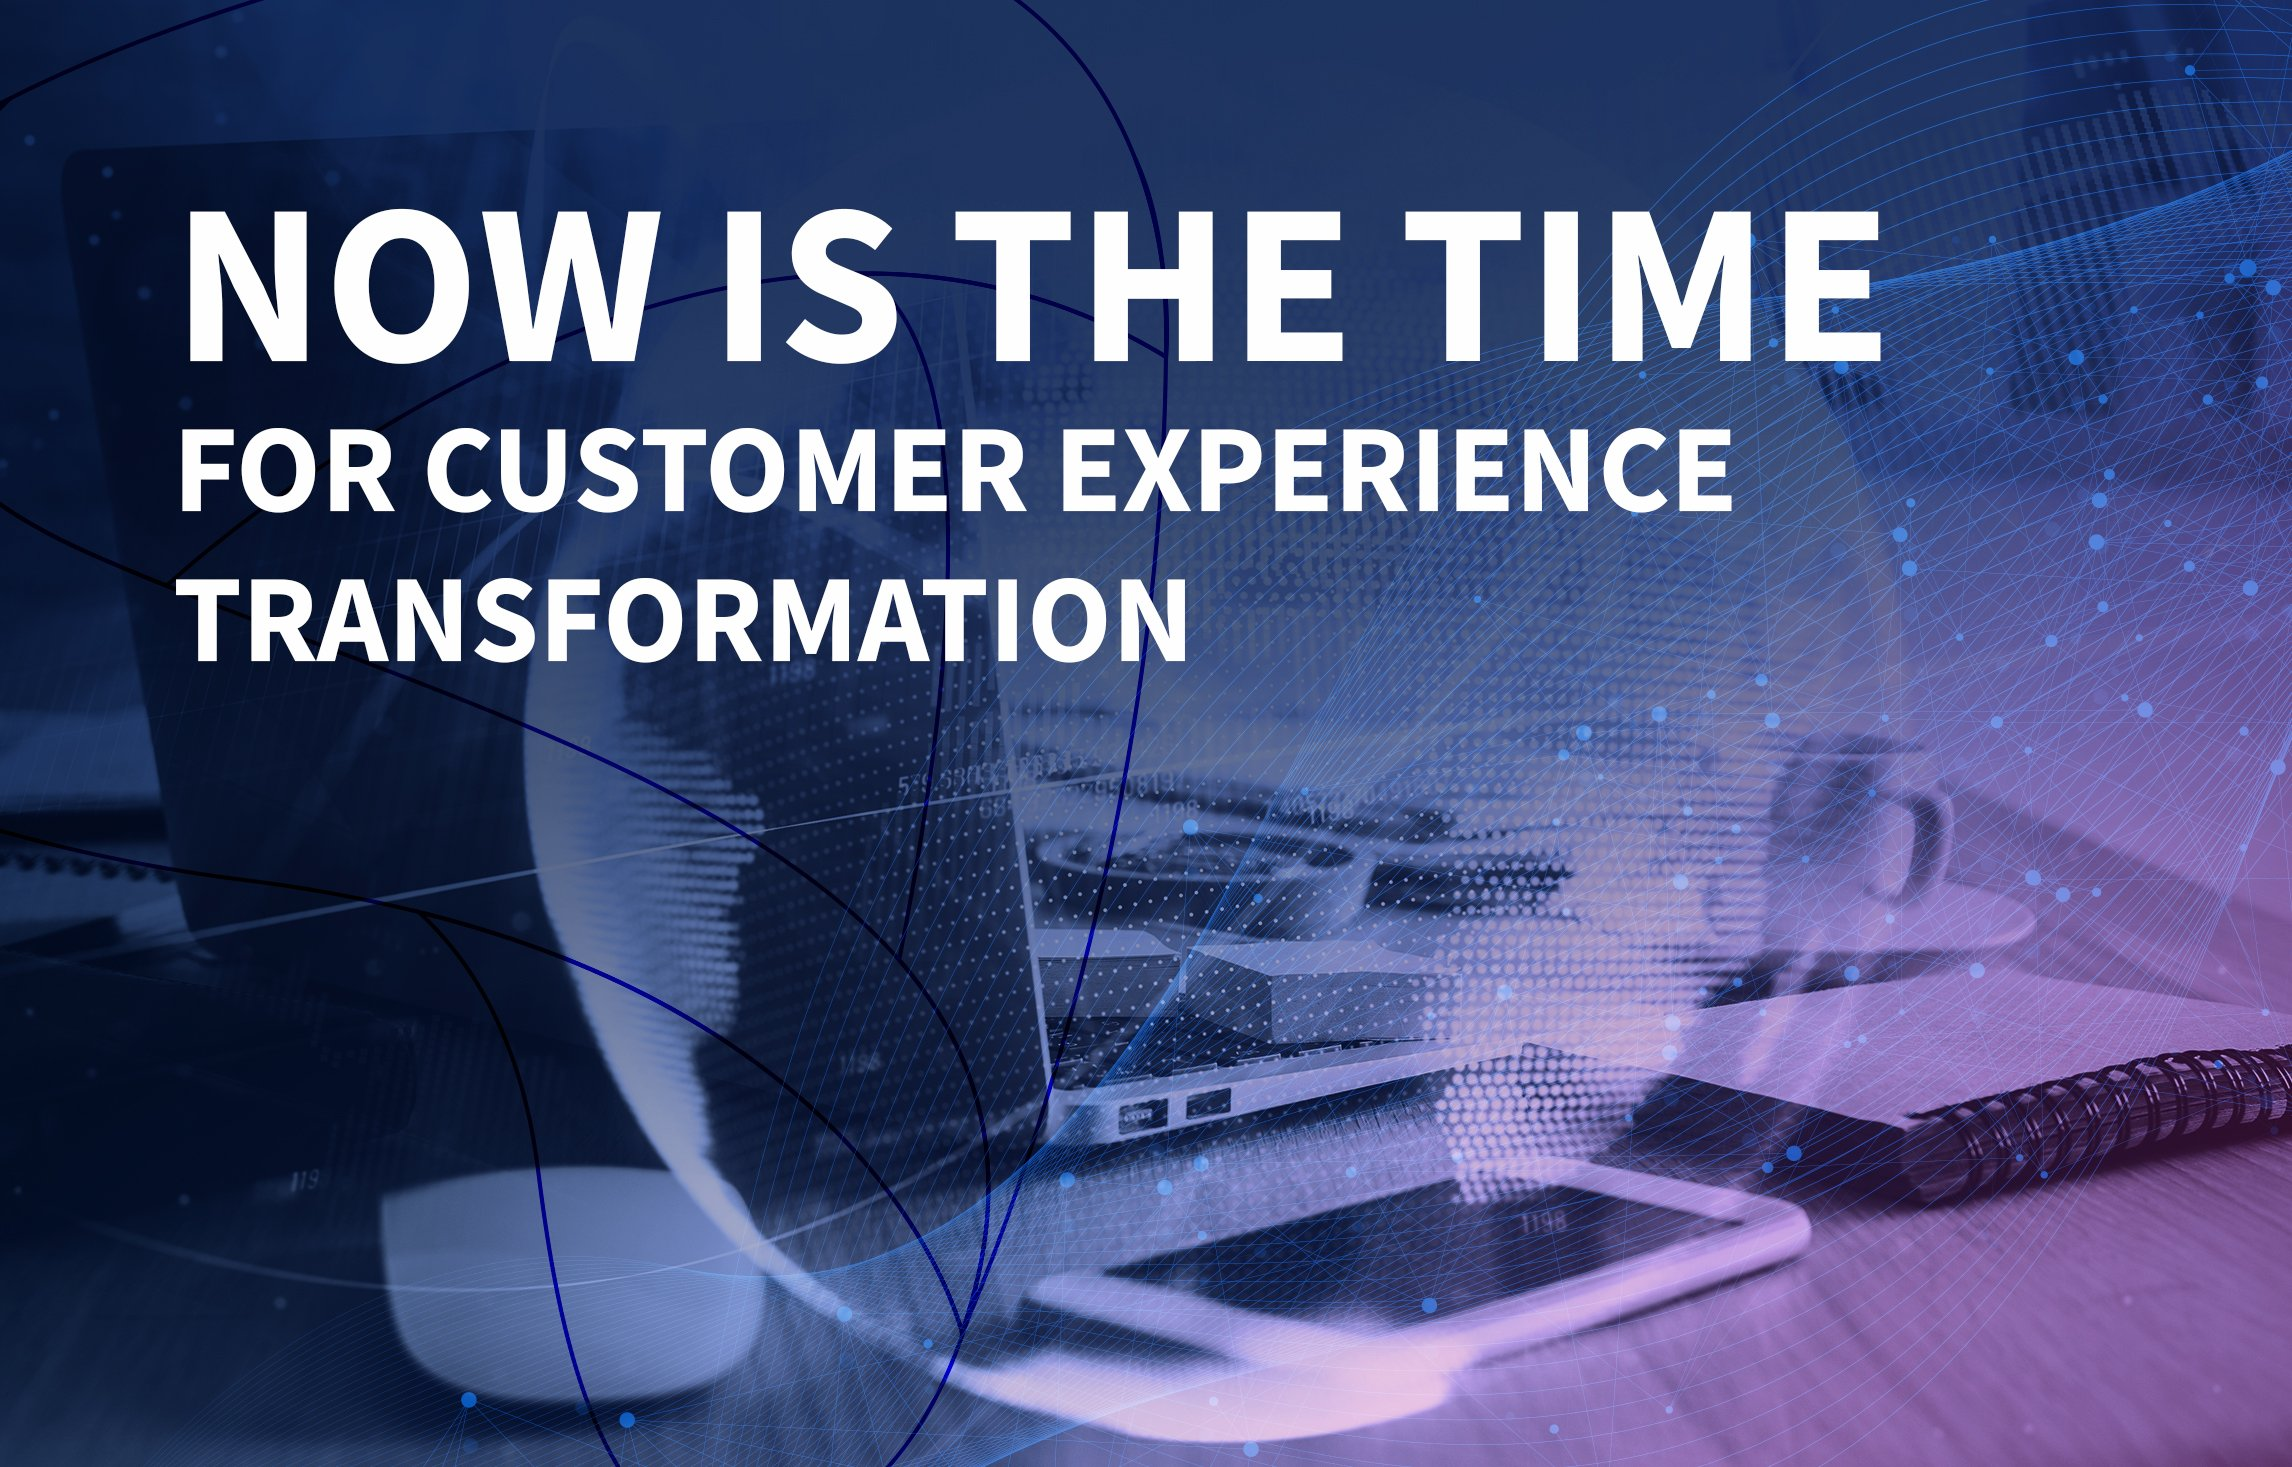 Now is the time for customer experience transformation